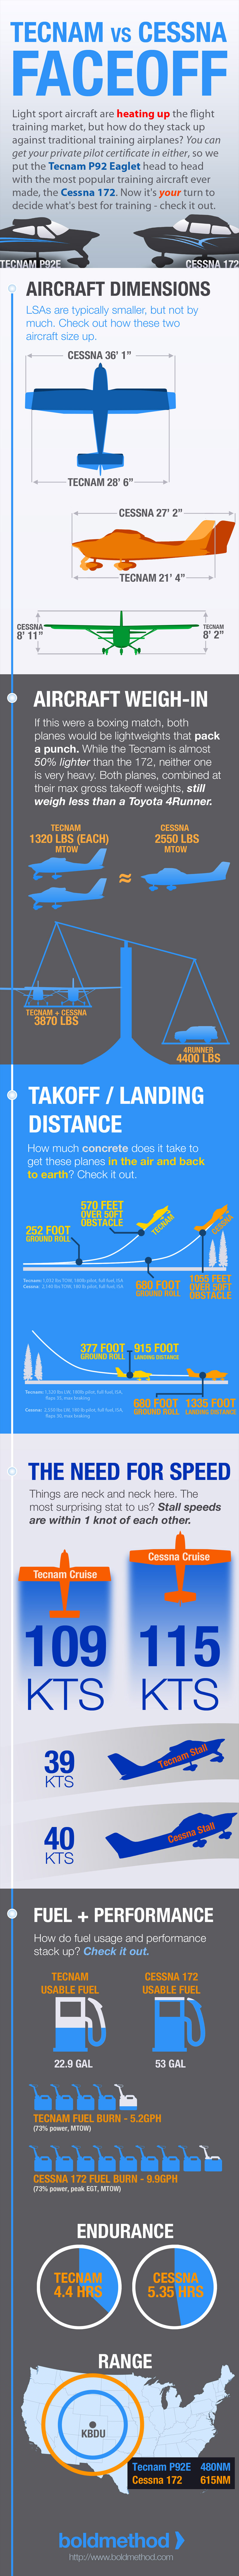 Cessna 172 vs Tecnam P92E Infographic - Mobile Only v3